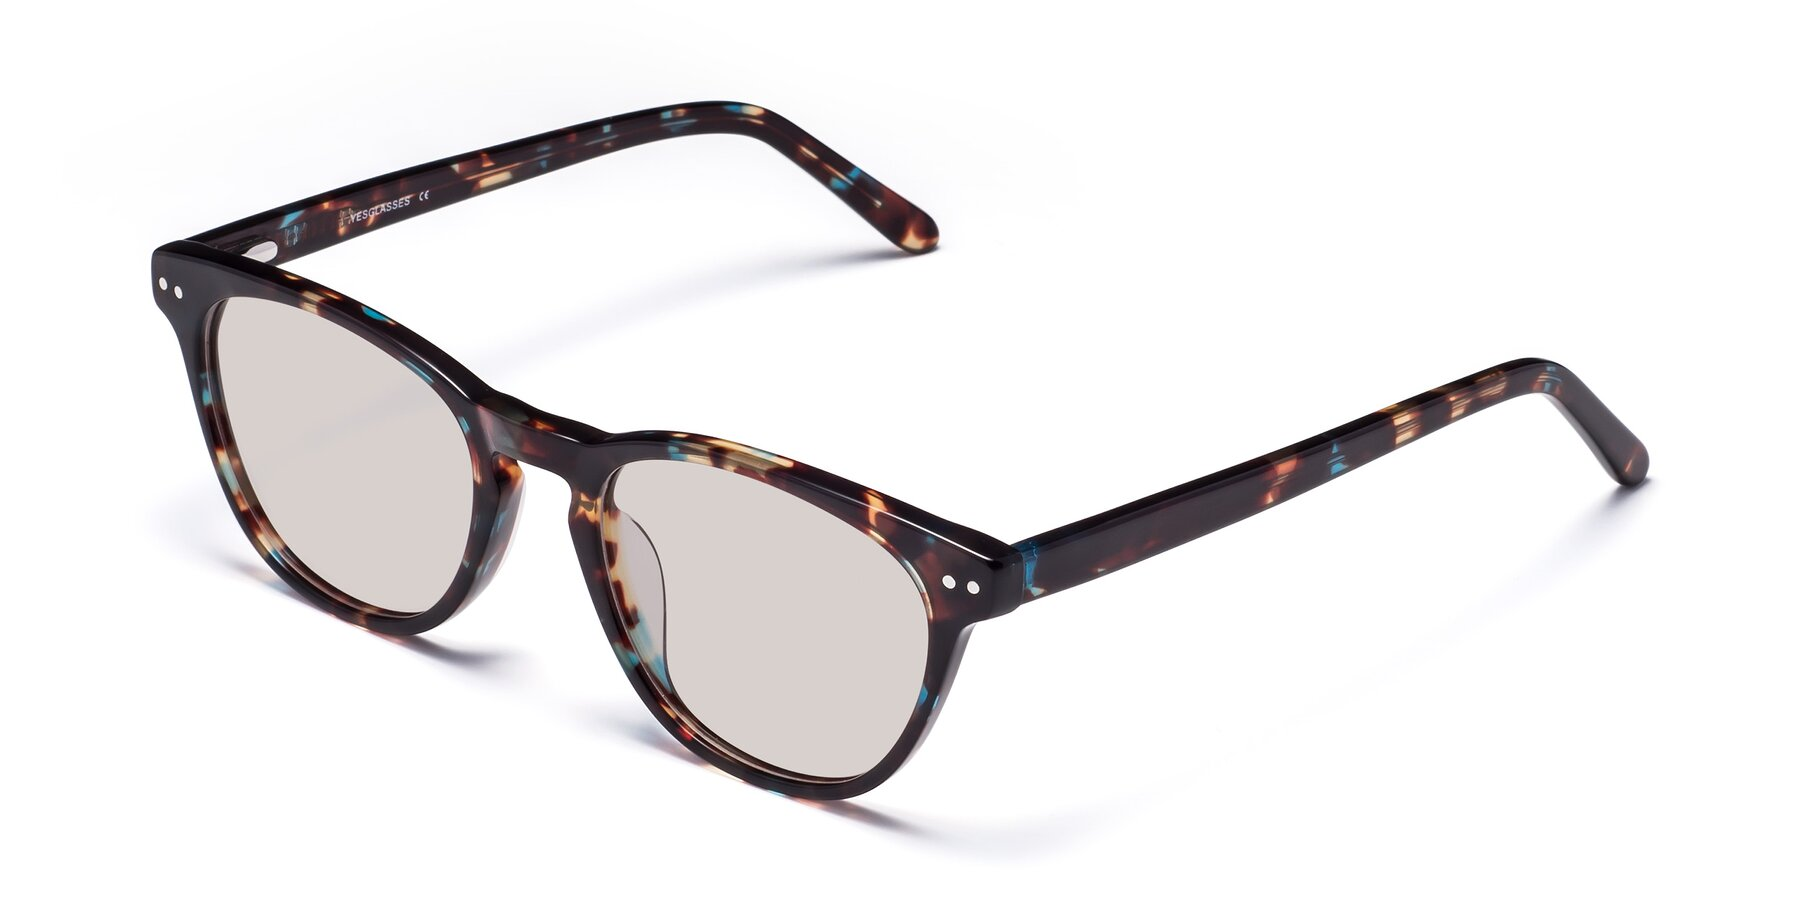 Angle of Blaze in Tortoise-Blue with Light Brown Tinted Lenses